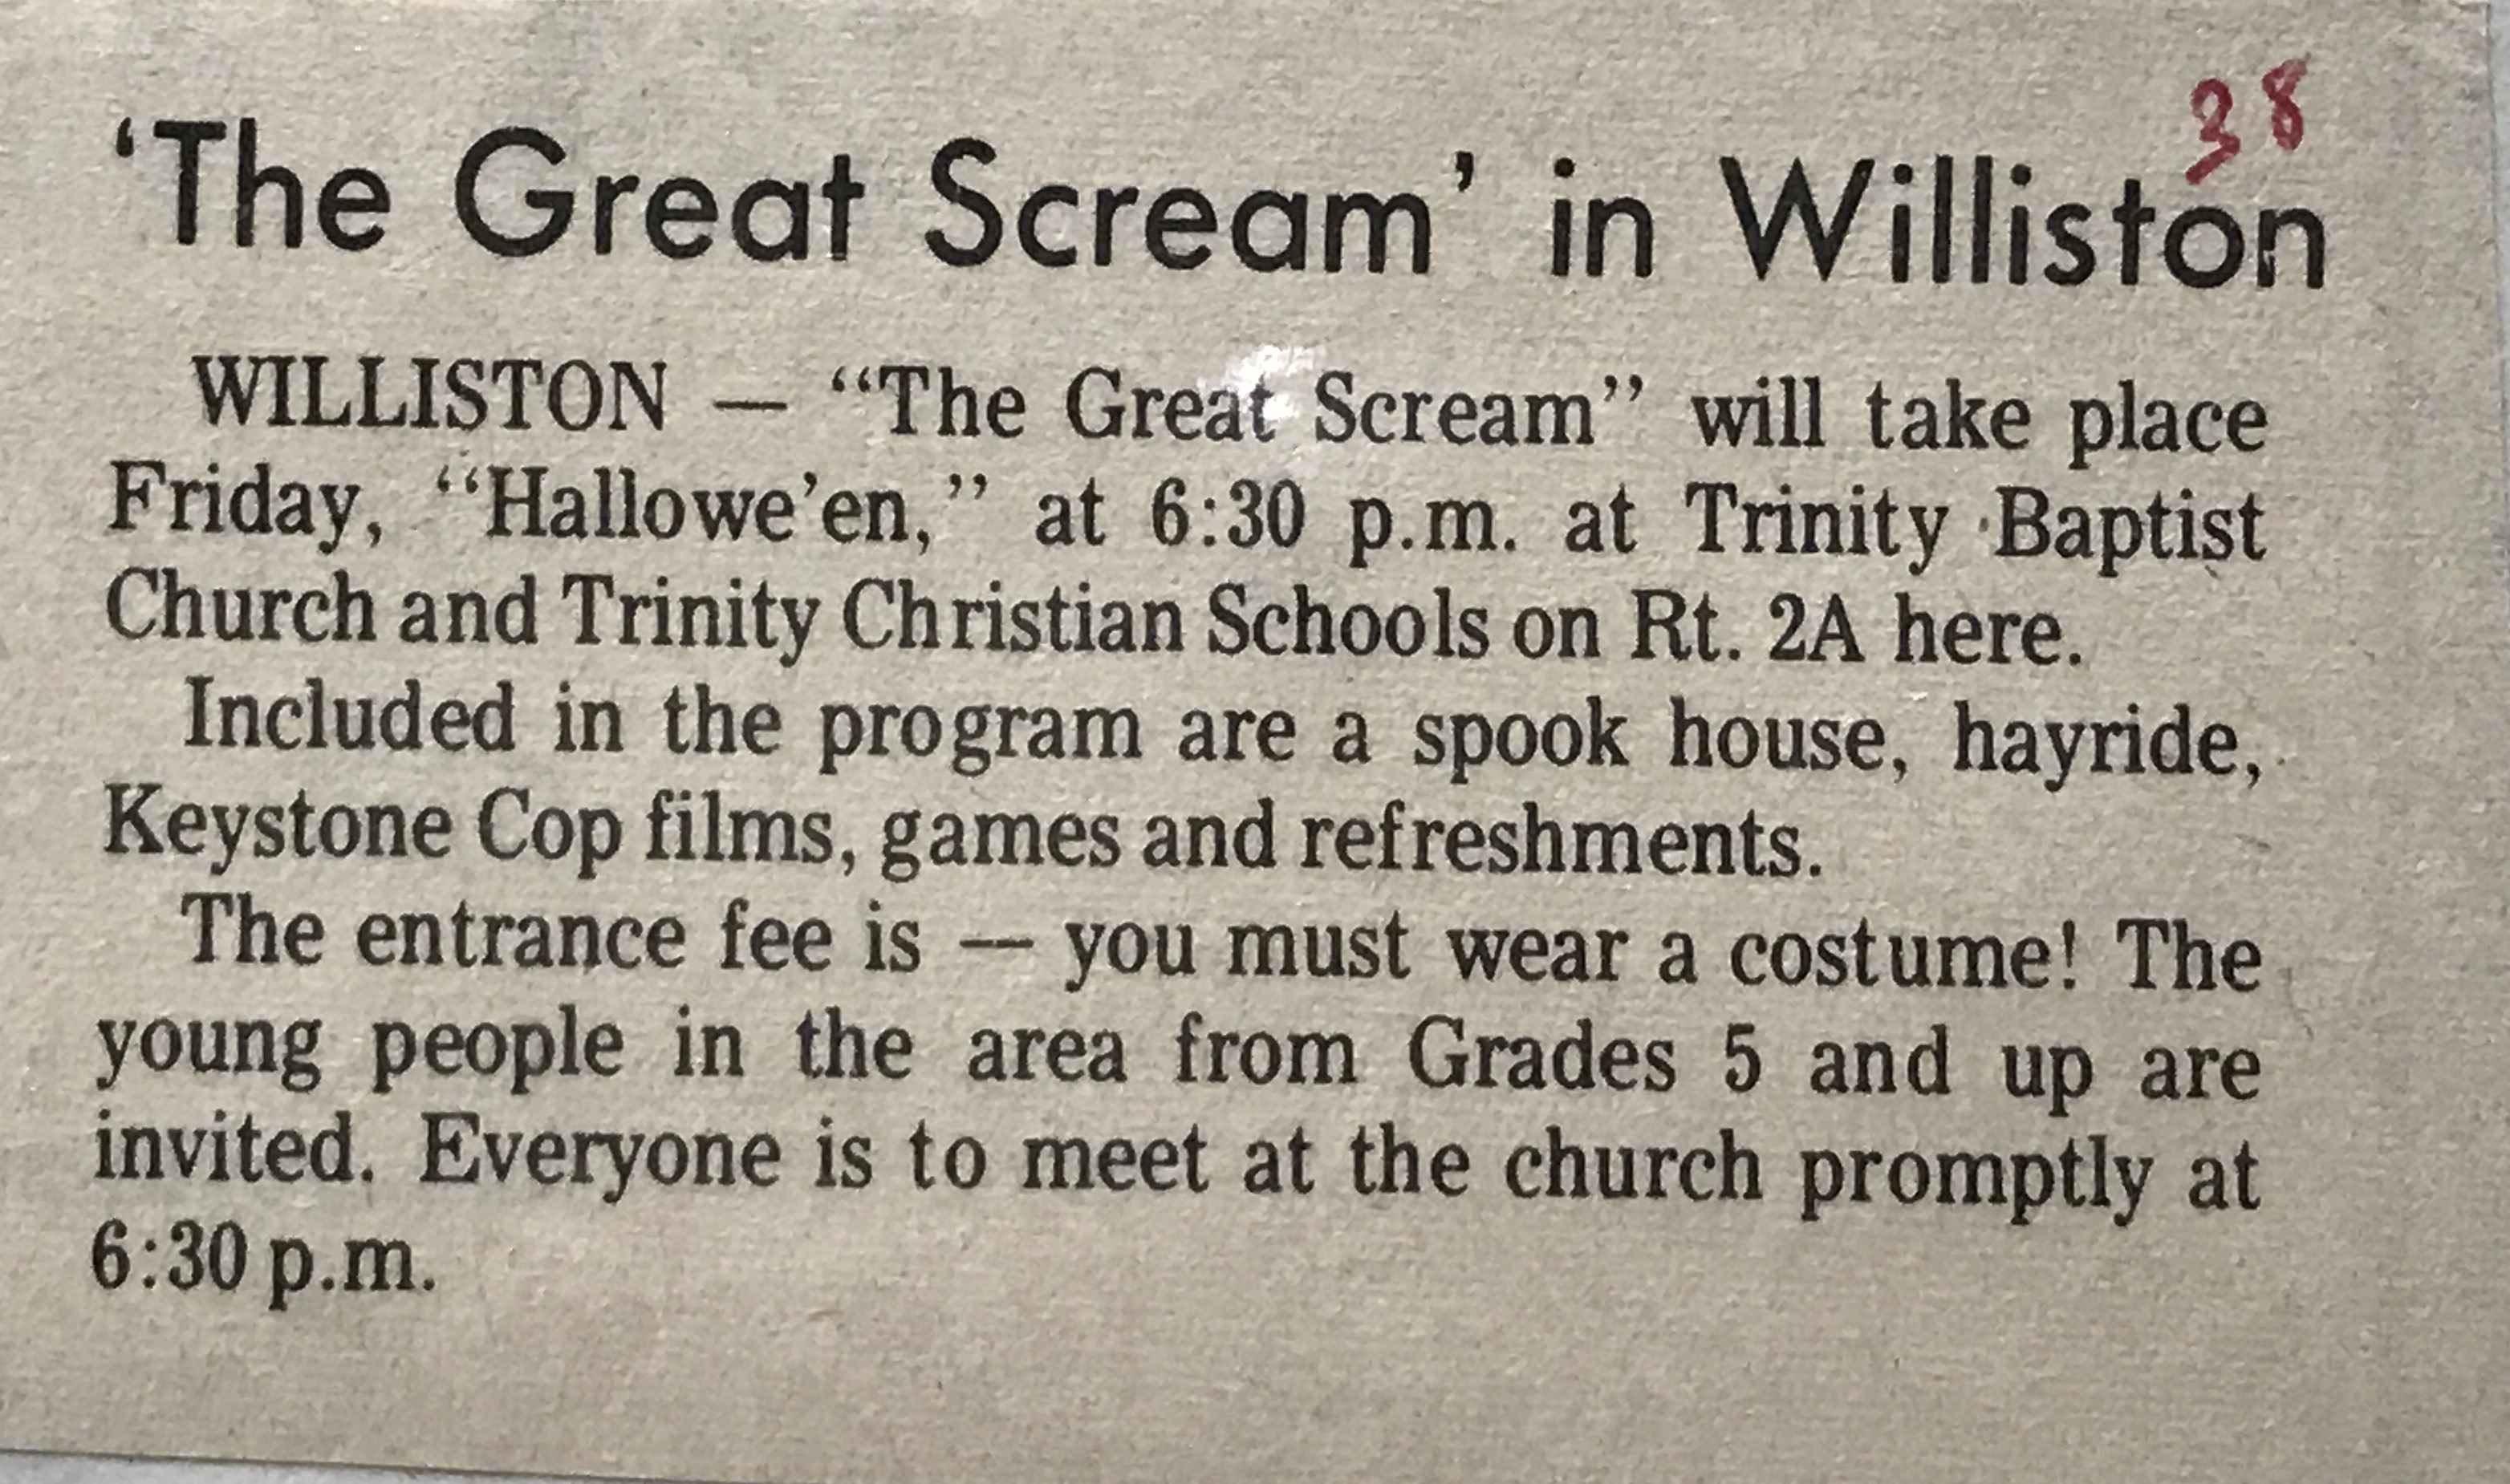 The Great Scream